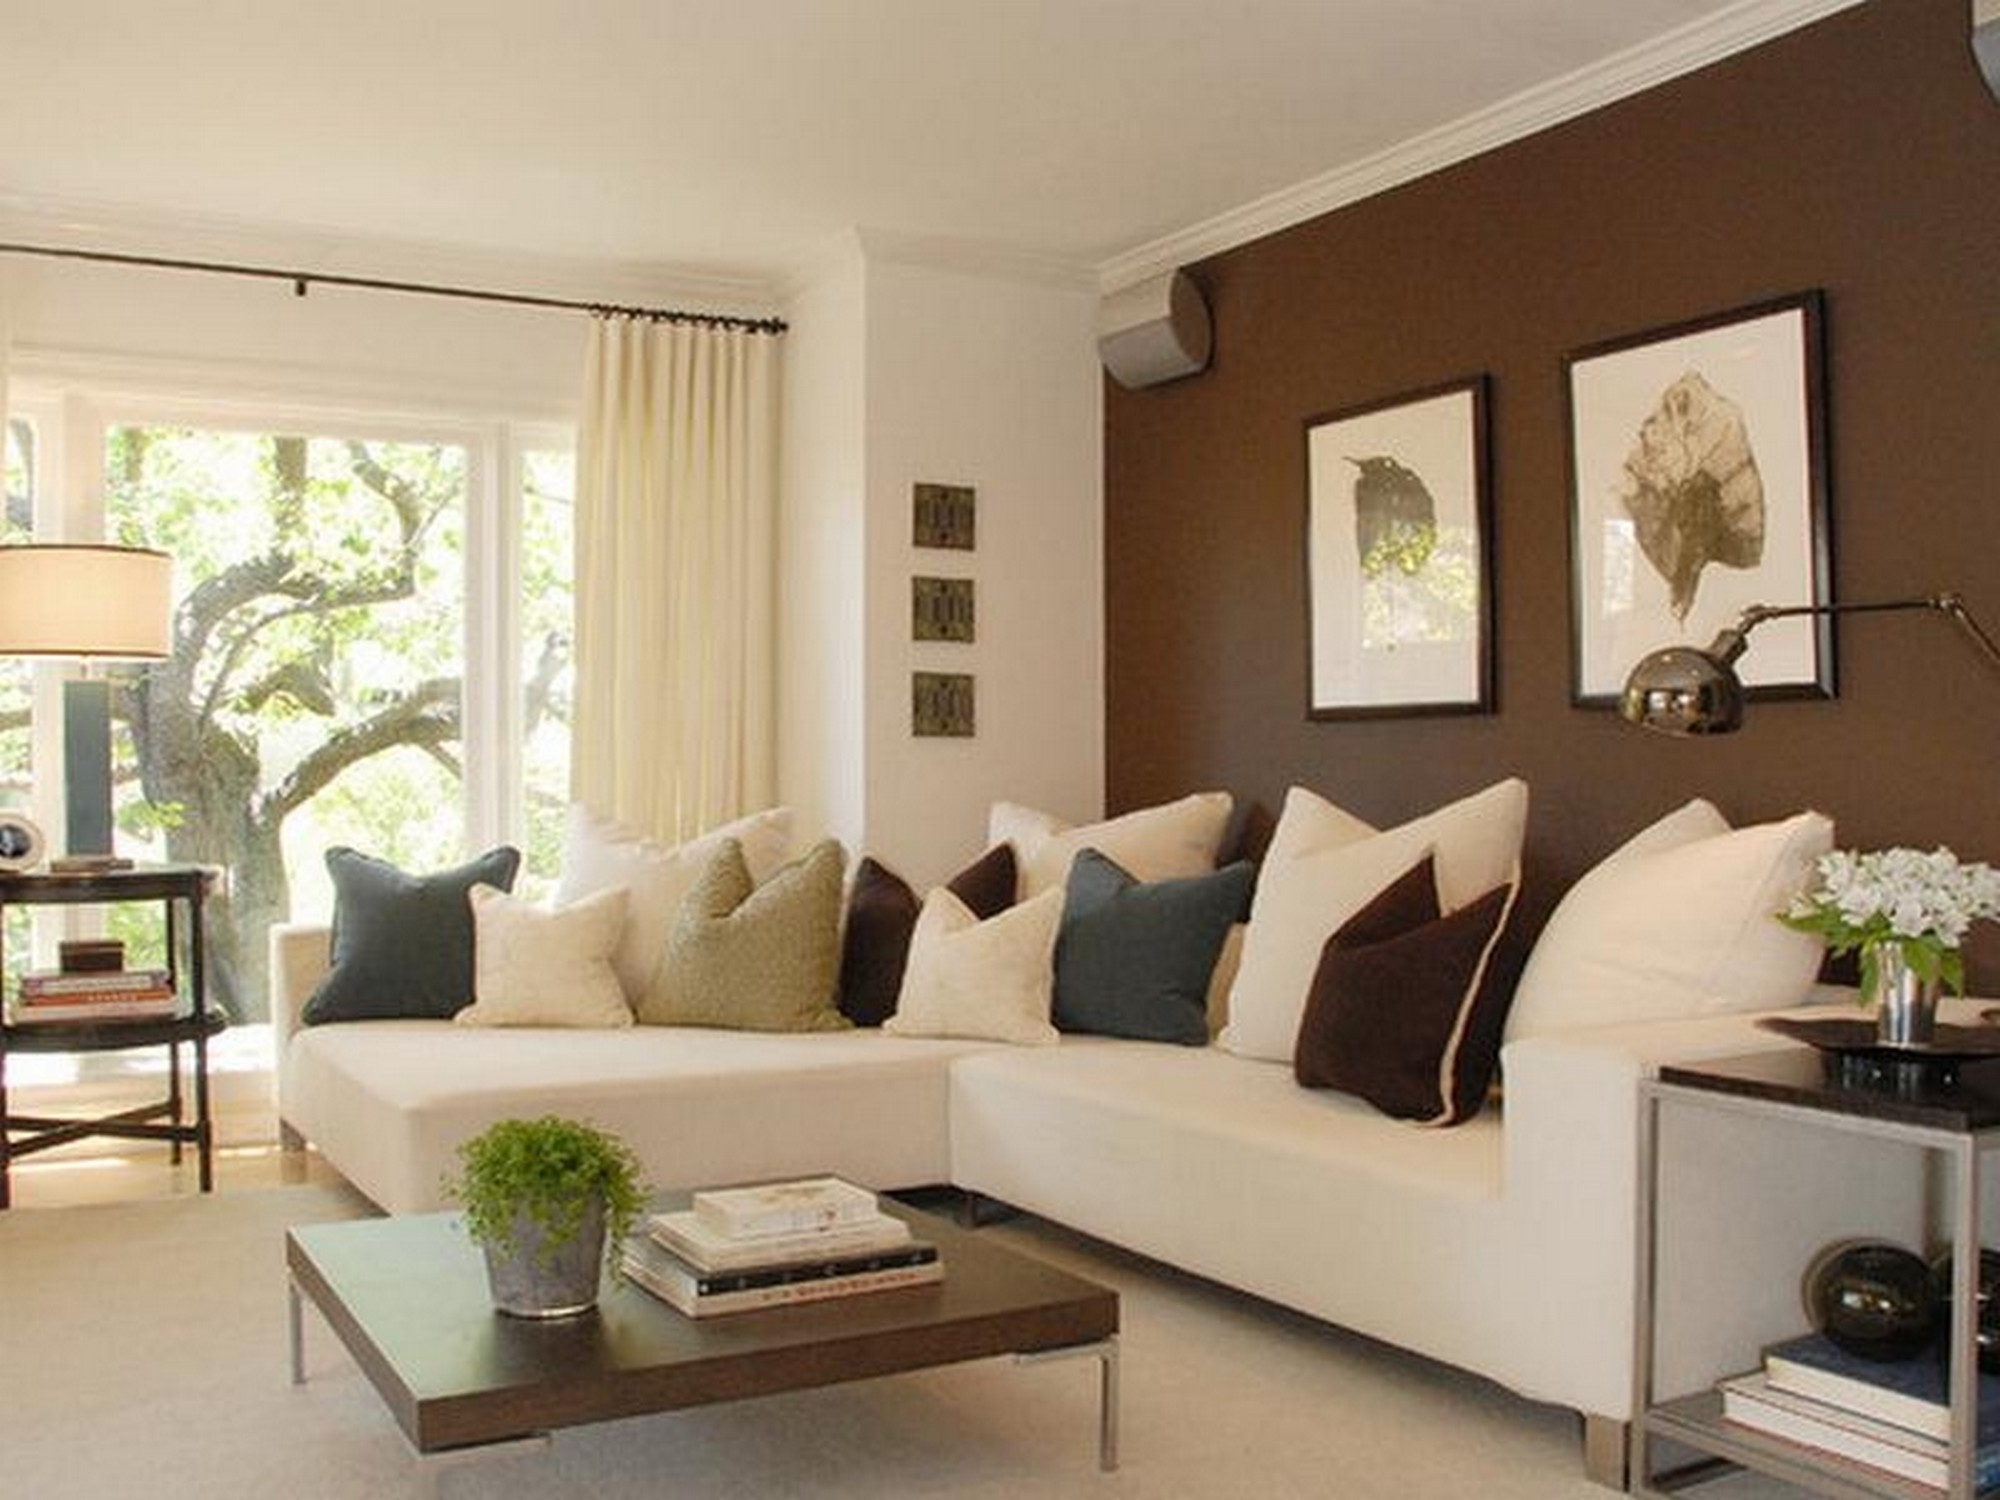 Living Room Paint Colors Small Color Ideas Schemes Wall Accent For With Regard To Most Popular Wall Accents Colors For Living Room (View 11 of 15)